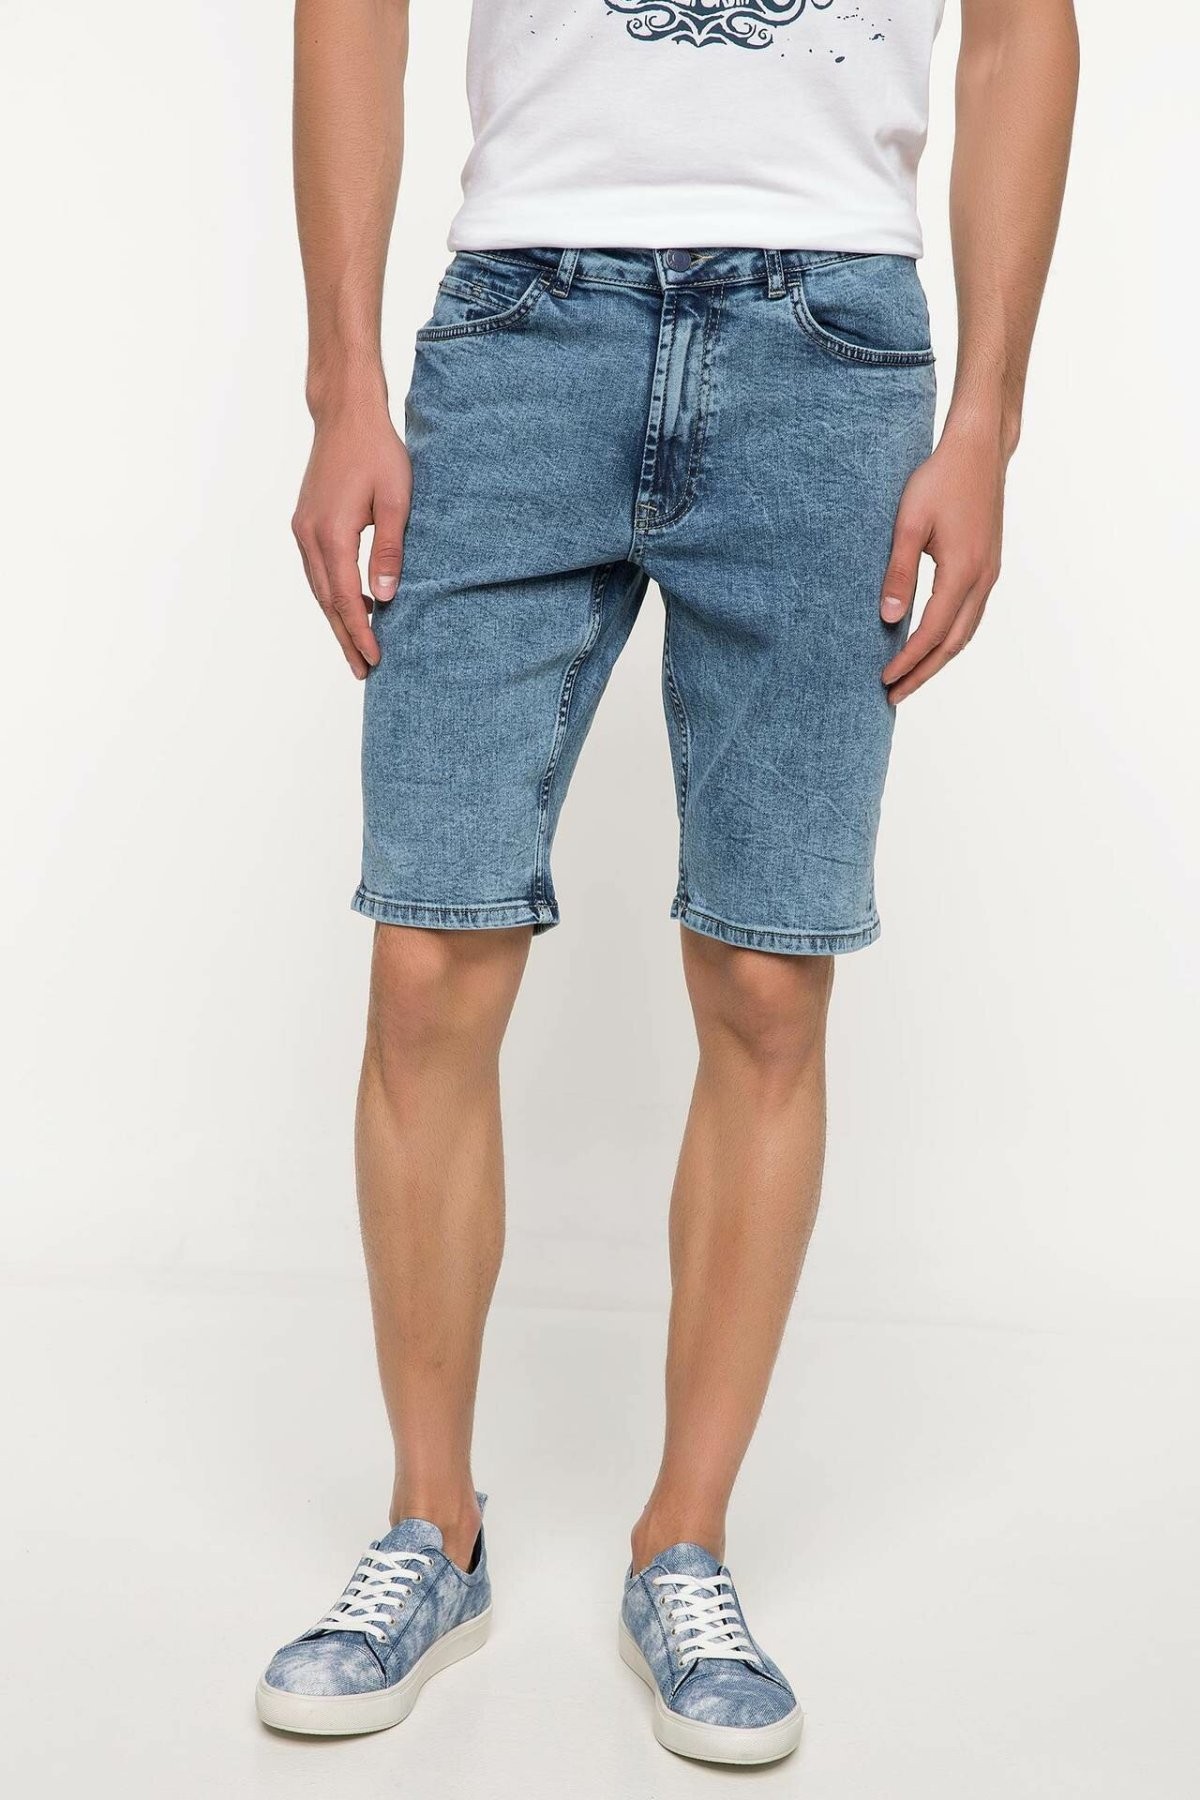 DeFacto Man Summer Denim Shorts Men Casual Straight Denim Short Pants Male Light Bluse Denim Bermuda-I6165AZ18SM